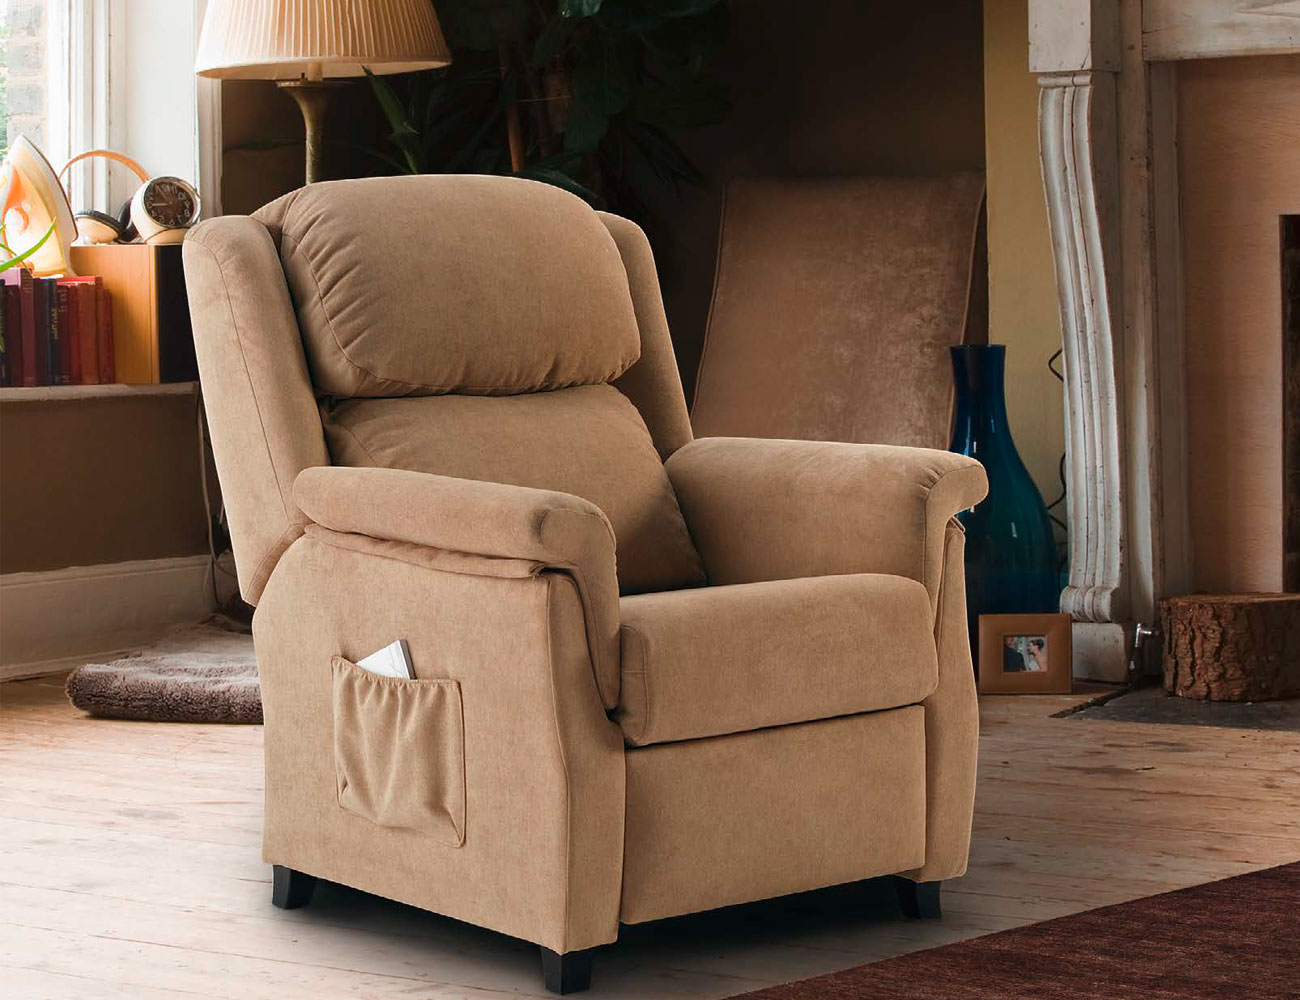 Sillon relax manual bianca 18